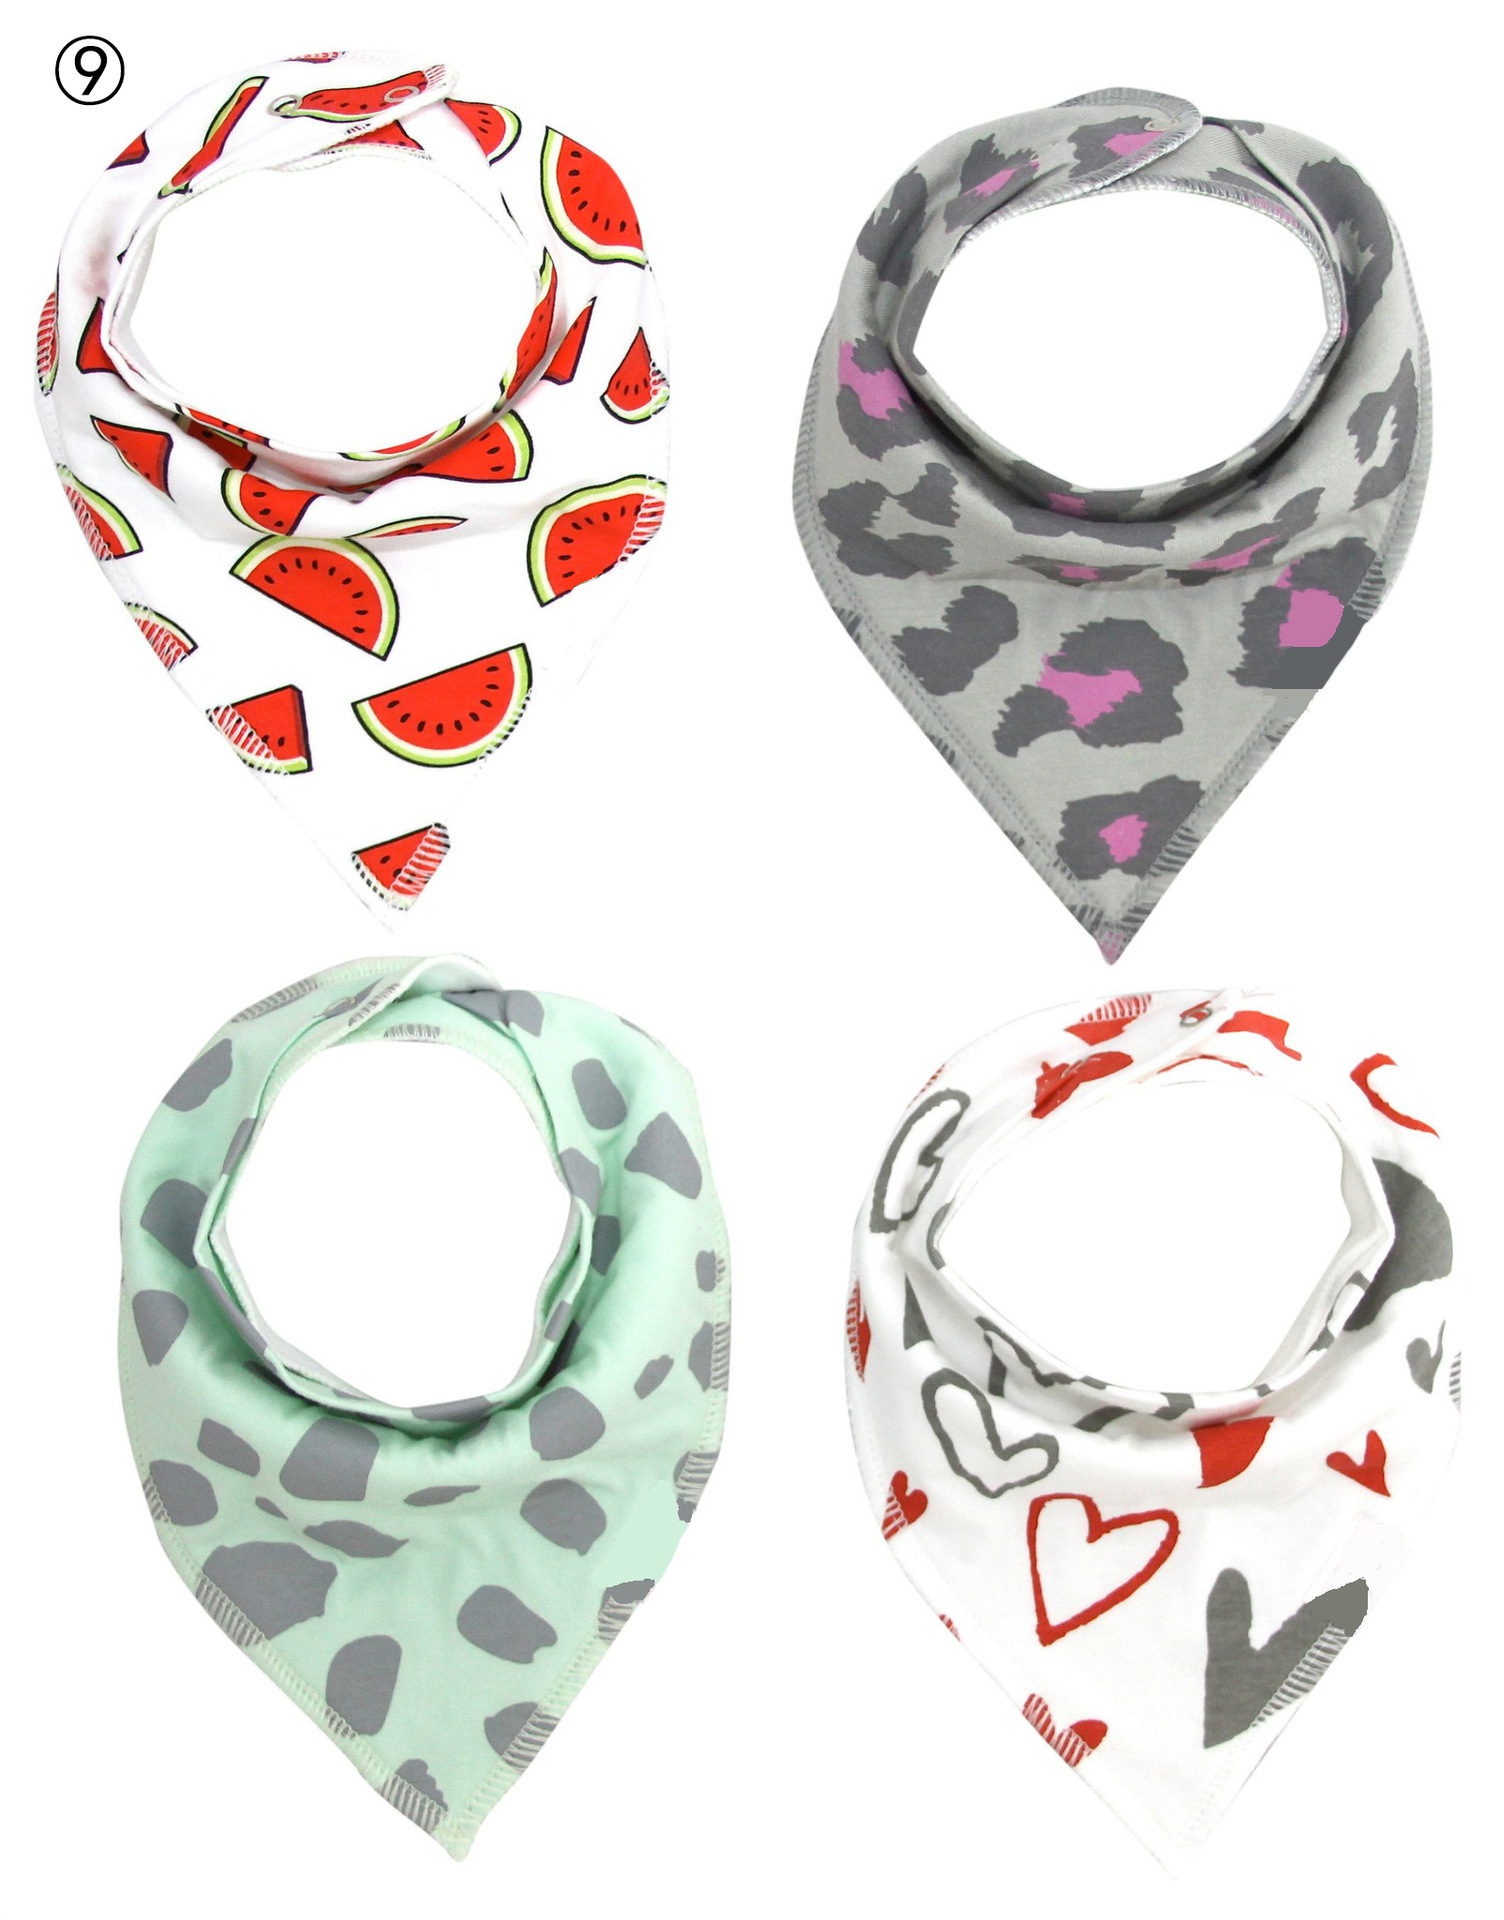 4PCS/lot Baby Infant Accessories Bibs Burp Cloths Waterproof Cotton Printing for Children Baberos Bandana Triangular Scarf WD002